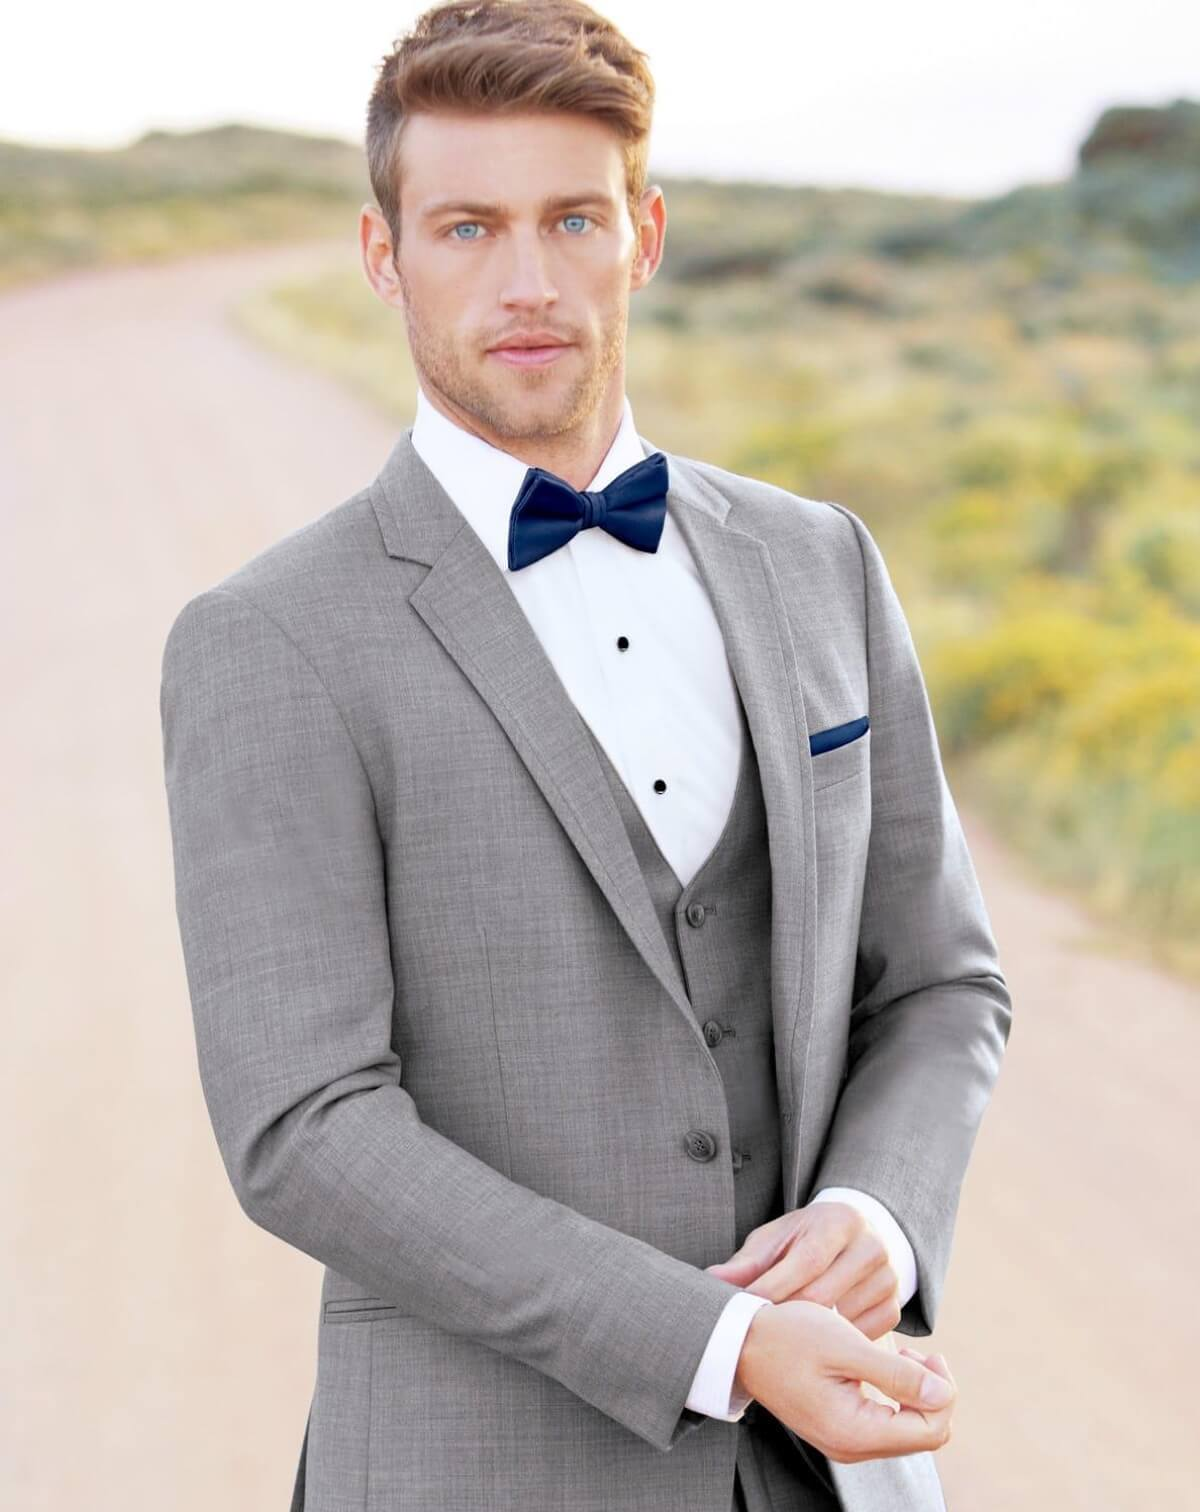 Model wearing a gray tuxedo